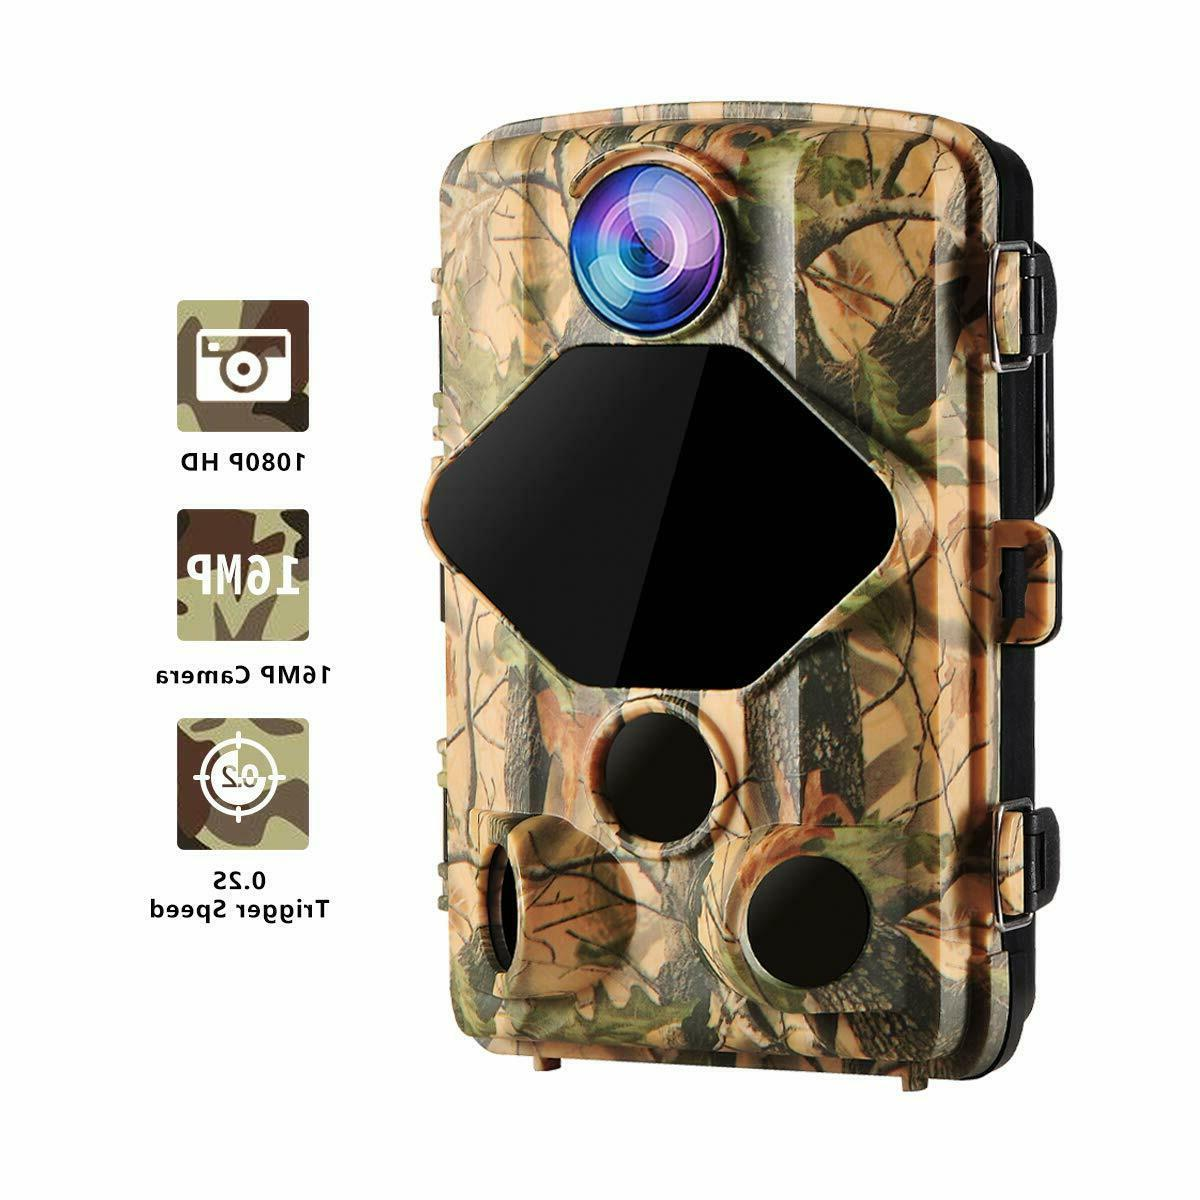 Wansview Hunting Camera 16MP 1080P with 0.2S Trigger and Wide Viewing Angle, 70ft Night Waterproof Wildlife and Home Security